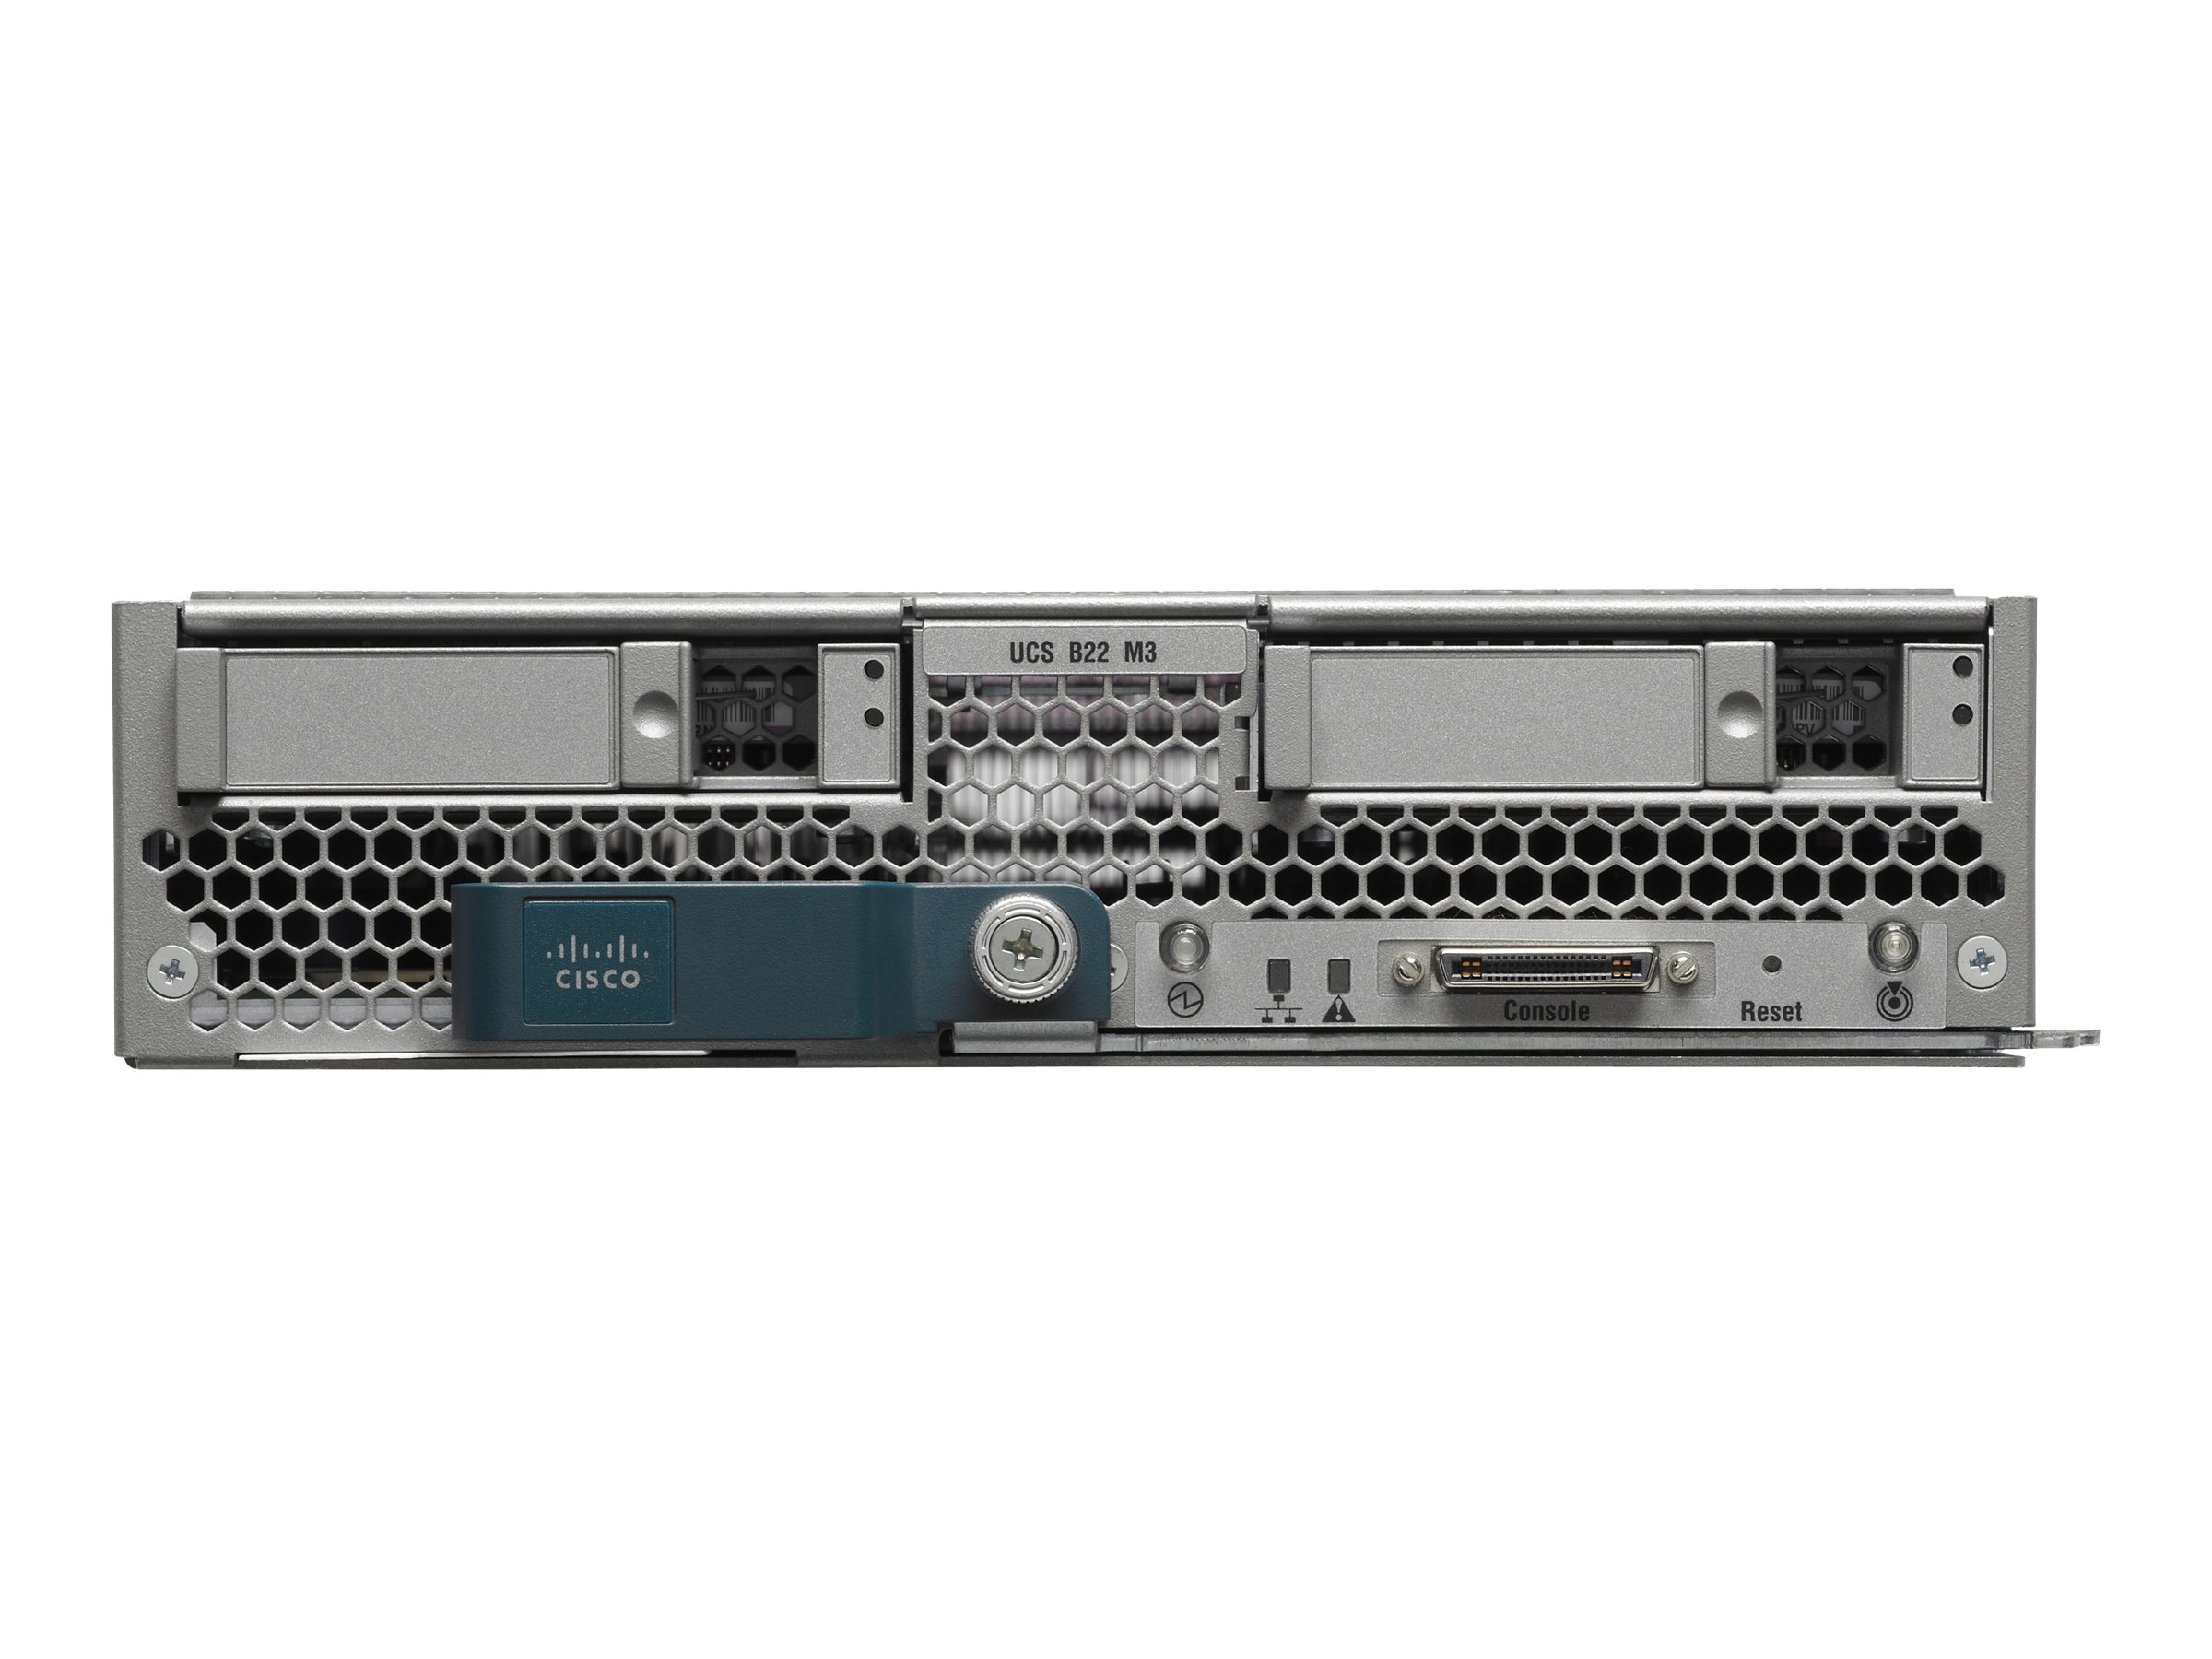 Cisco UCS B200 M3 Value SmartPlay Expansion (2x) Xeon E5-2640 v2 2.0GHz 128GB 2x2.5 Bays VIC1240, UCS-EZ7-B200-V, 16474711, Servers - Blade